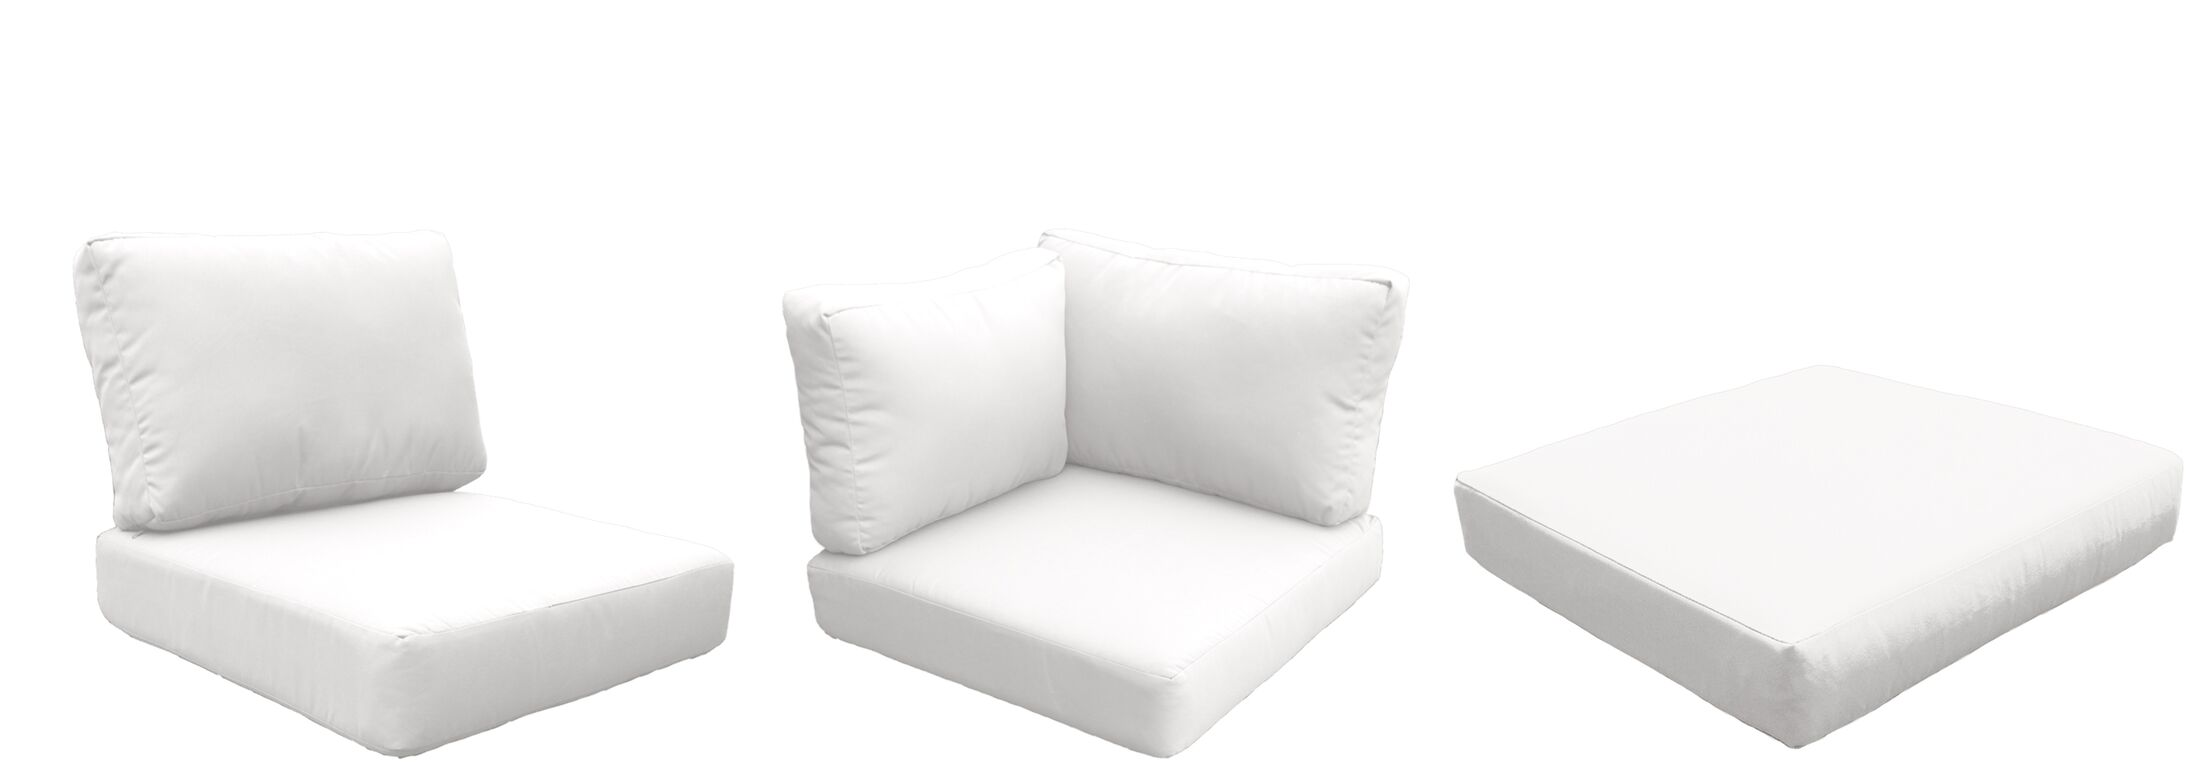 Fairmont Outdoor 19 Piece Lounge Chair Cushion Set Fabric: White